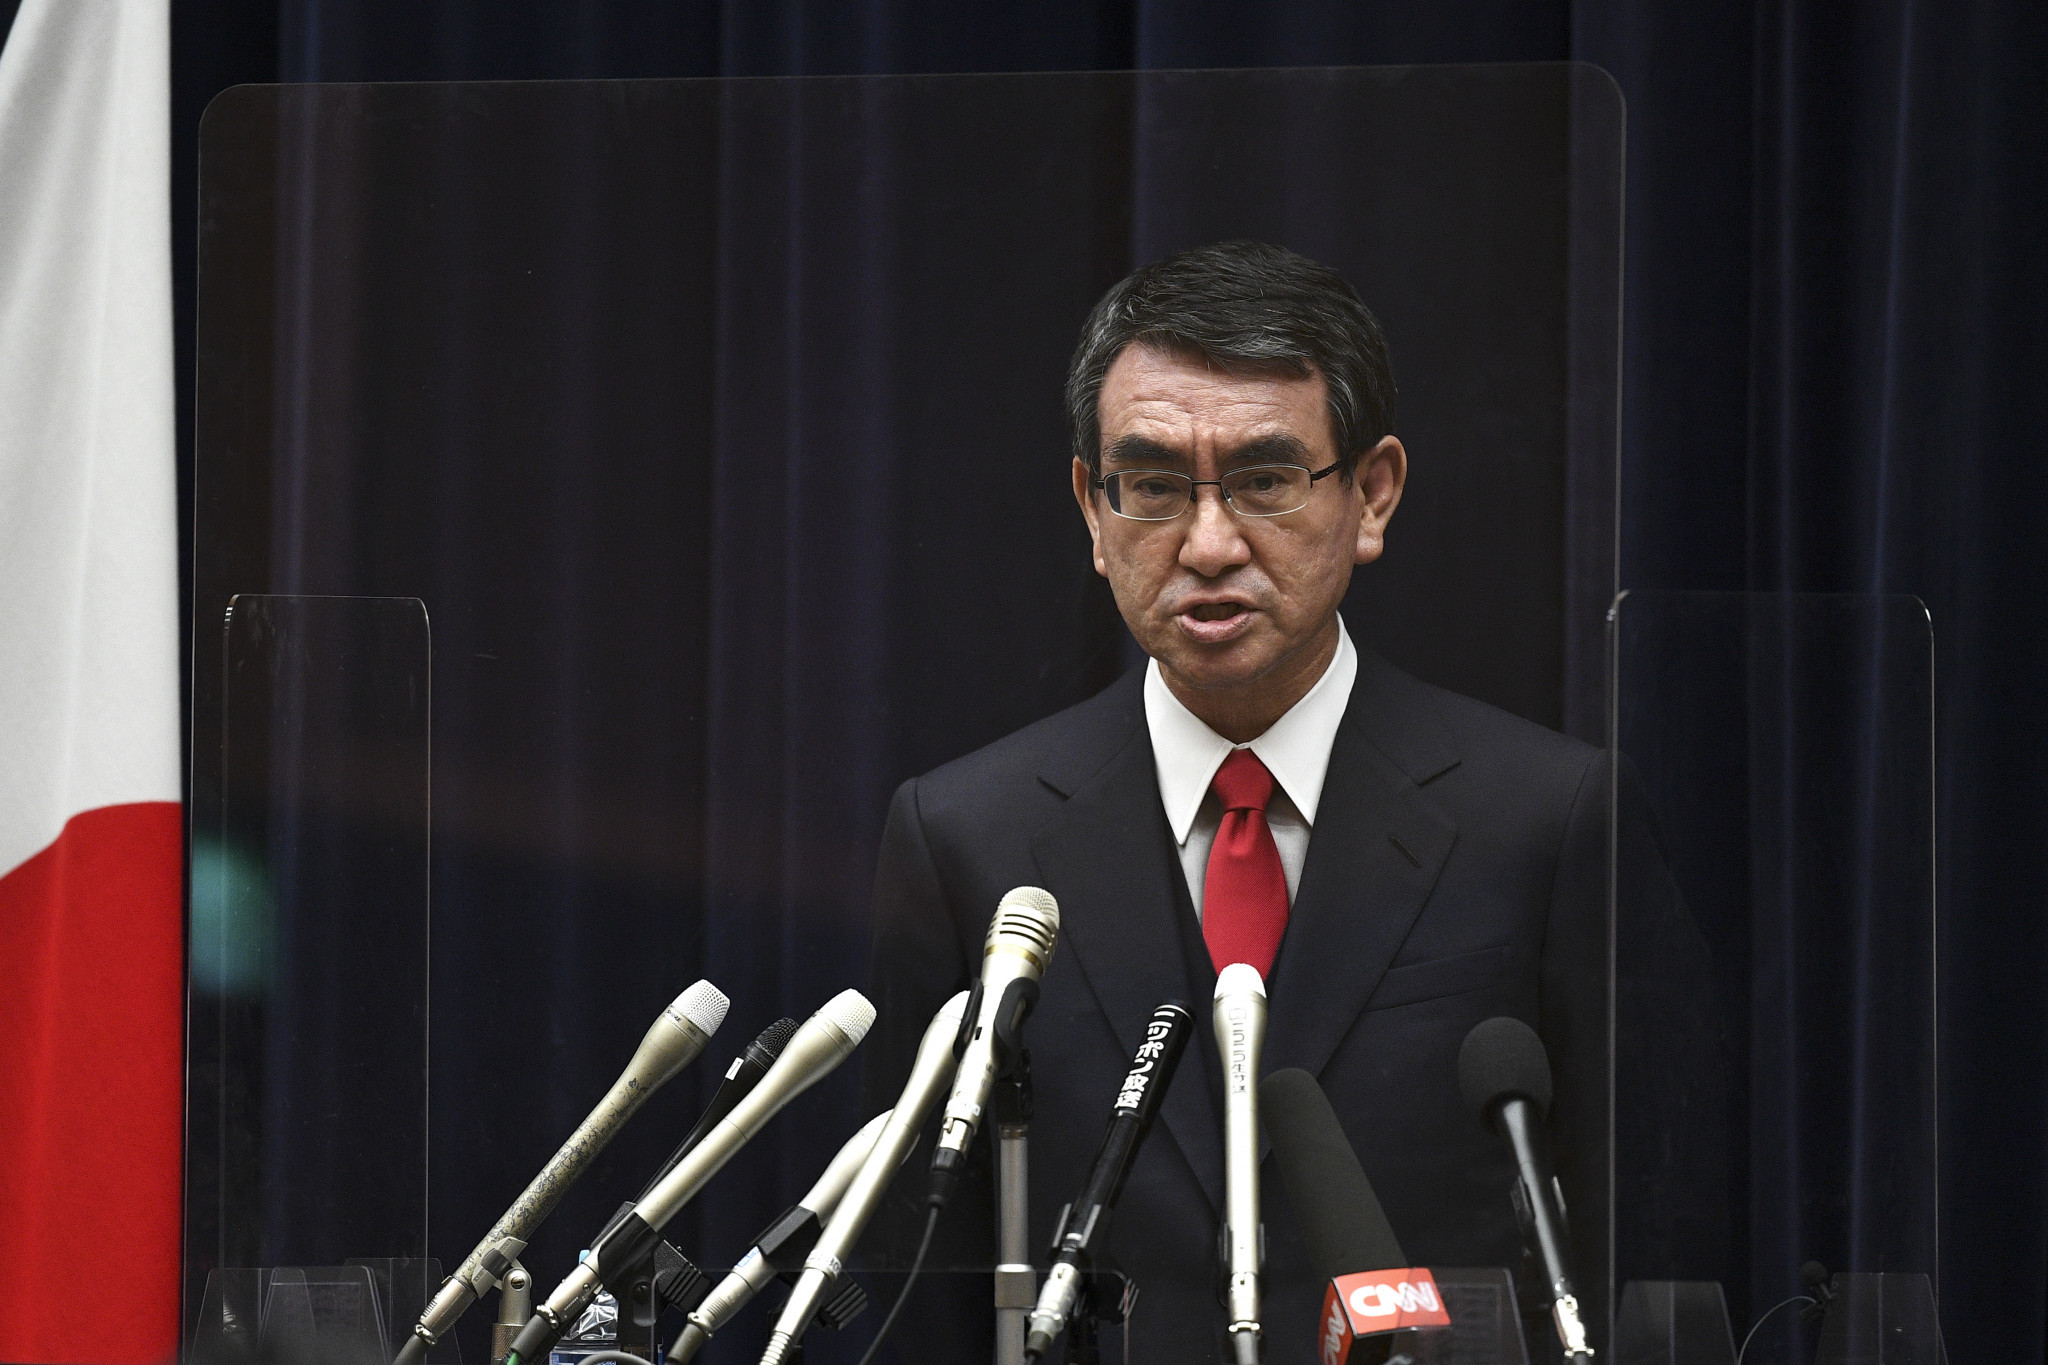 Japan's Vaccine Minister Taro Kono announced the procurement of 100 million does of a coronavirus vaccine ©Getty Images